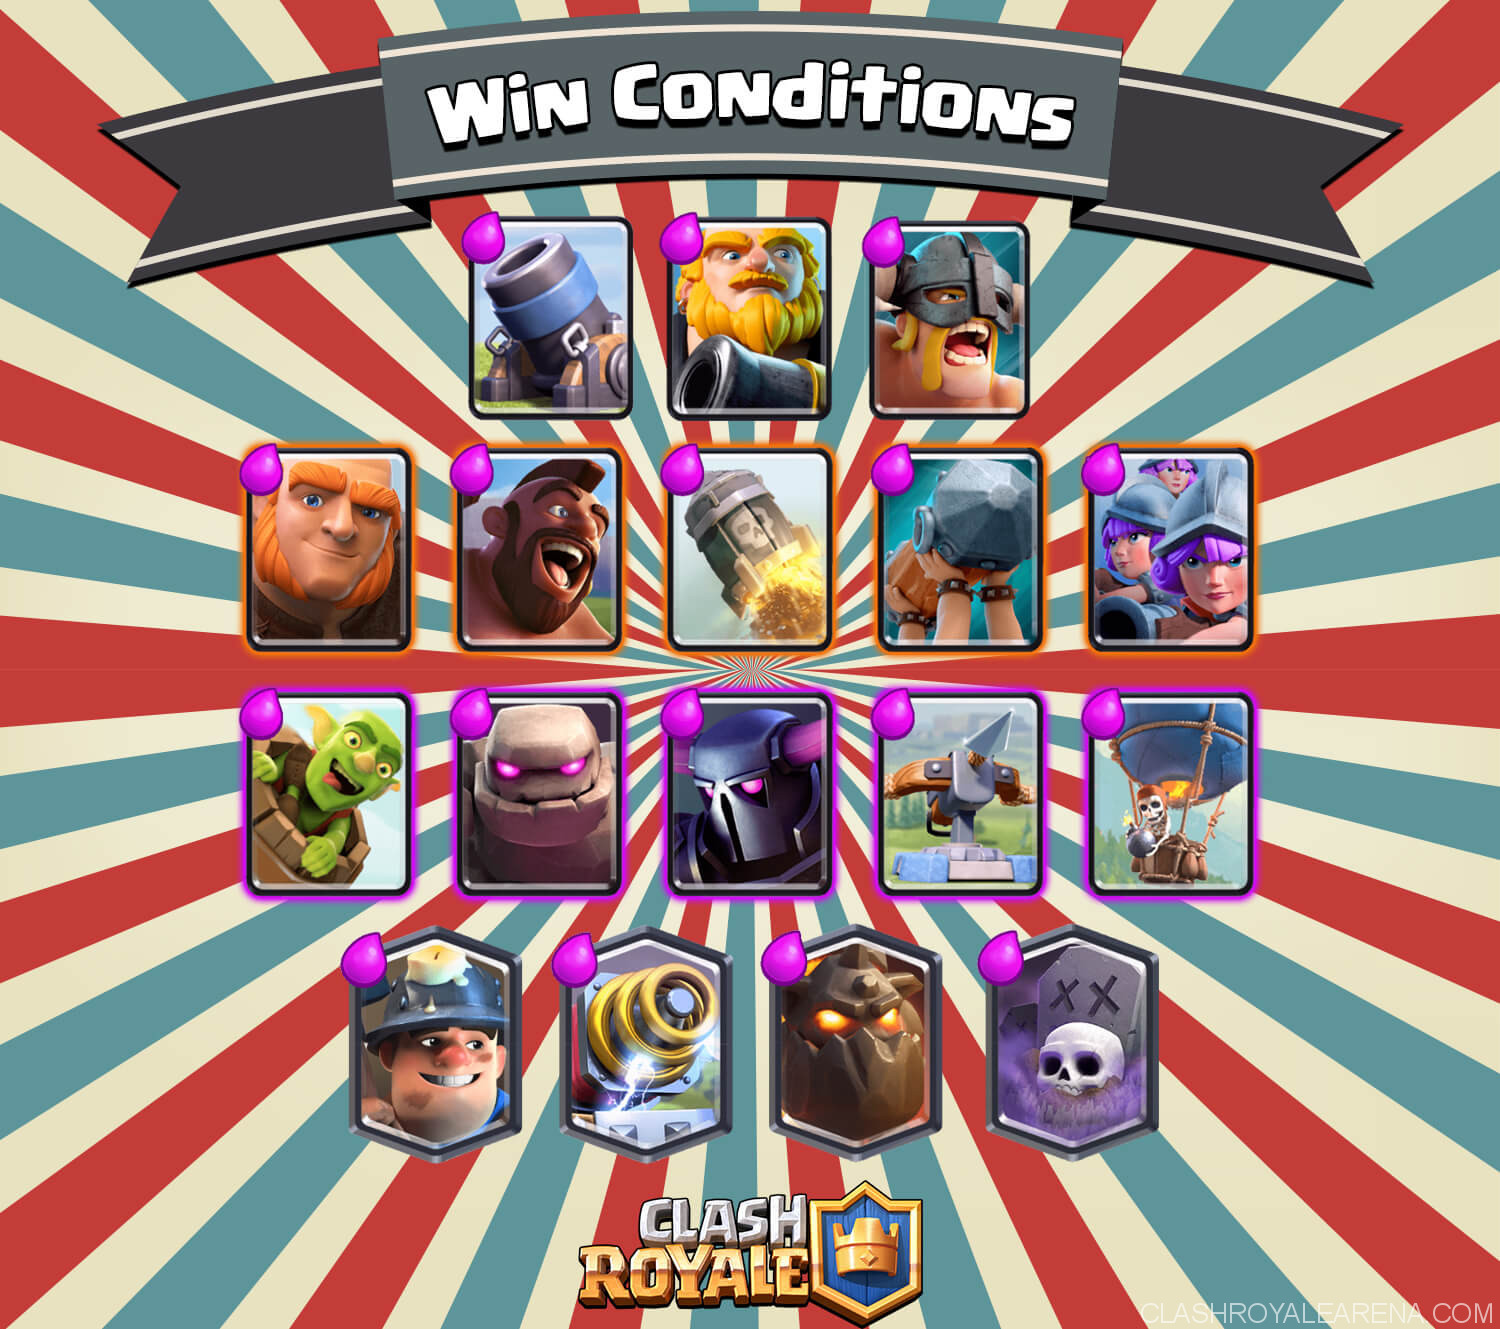 Top 5 Win-Conditions in Clash Royale